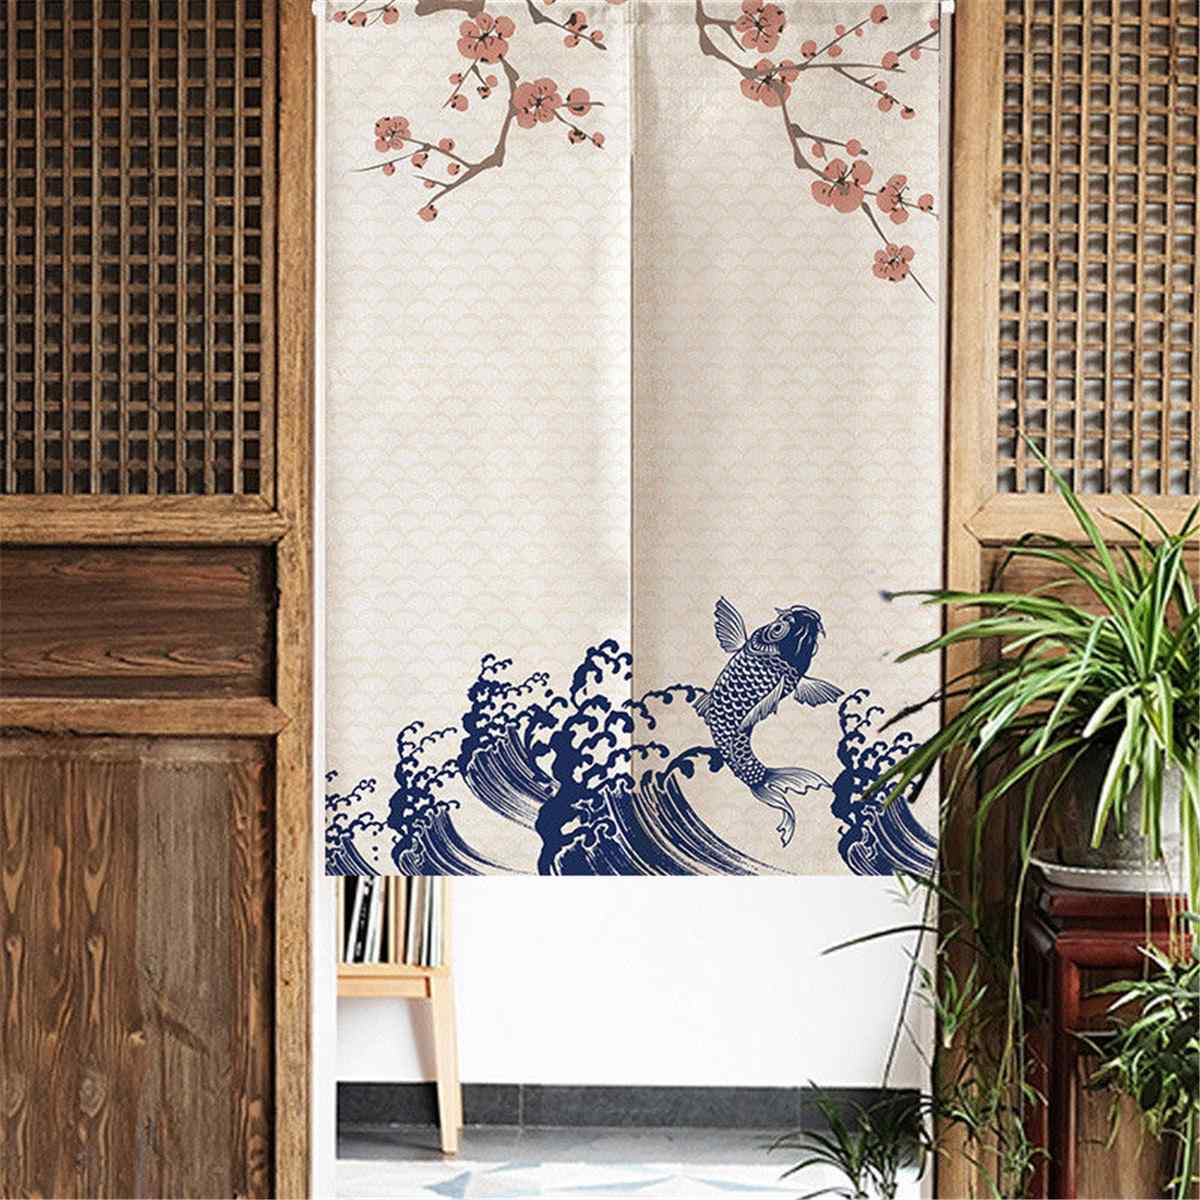 us 17 39 44 off japanese noren doorway curtain romantic blossom cherry tapestry kitchen curtains 85x150cm home decorative door curtain curtains